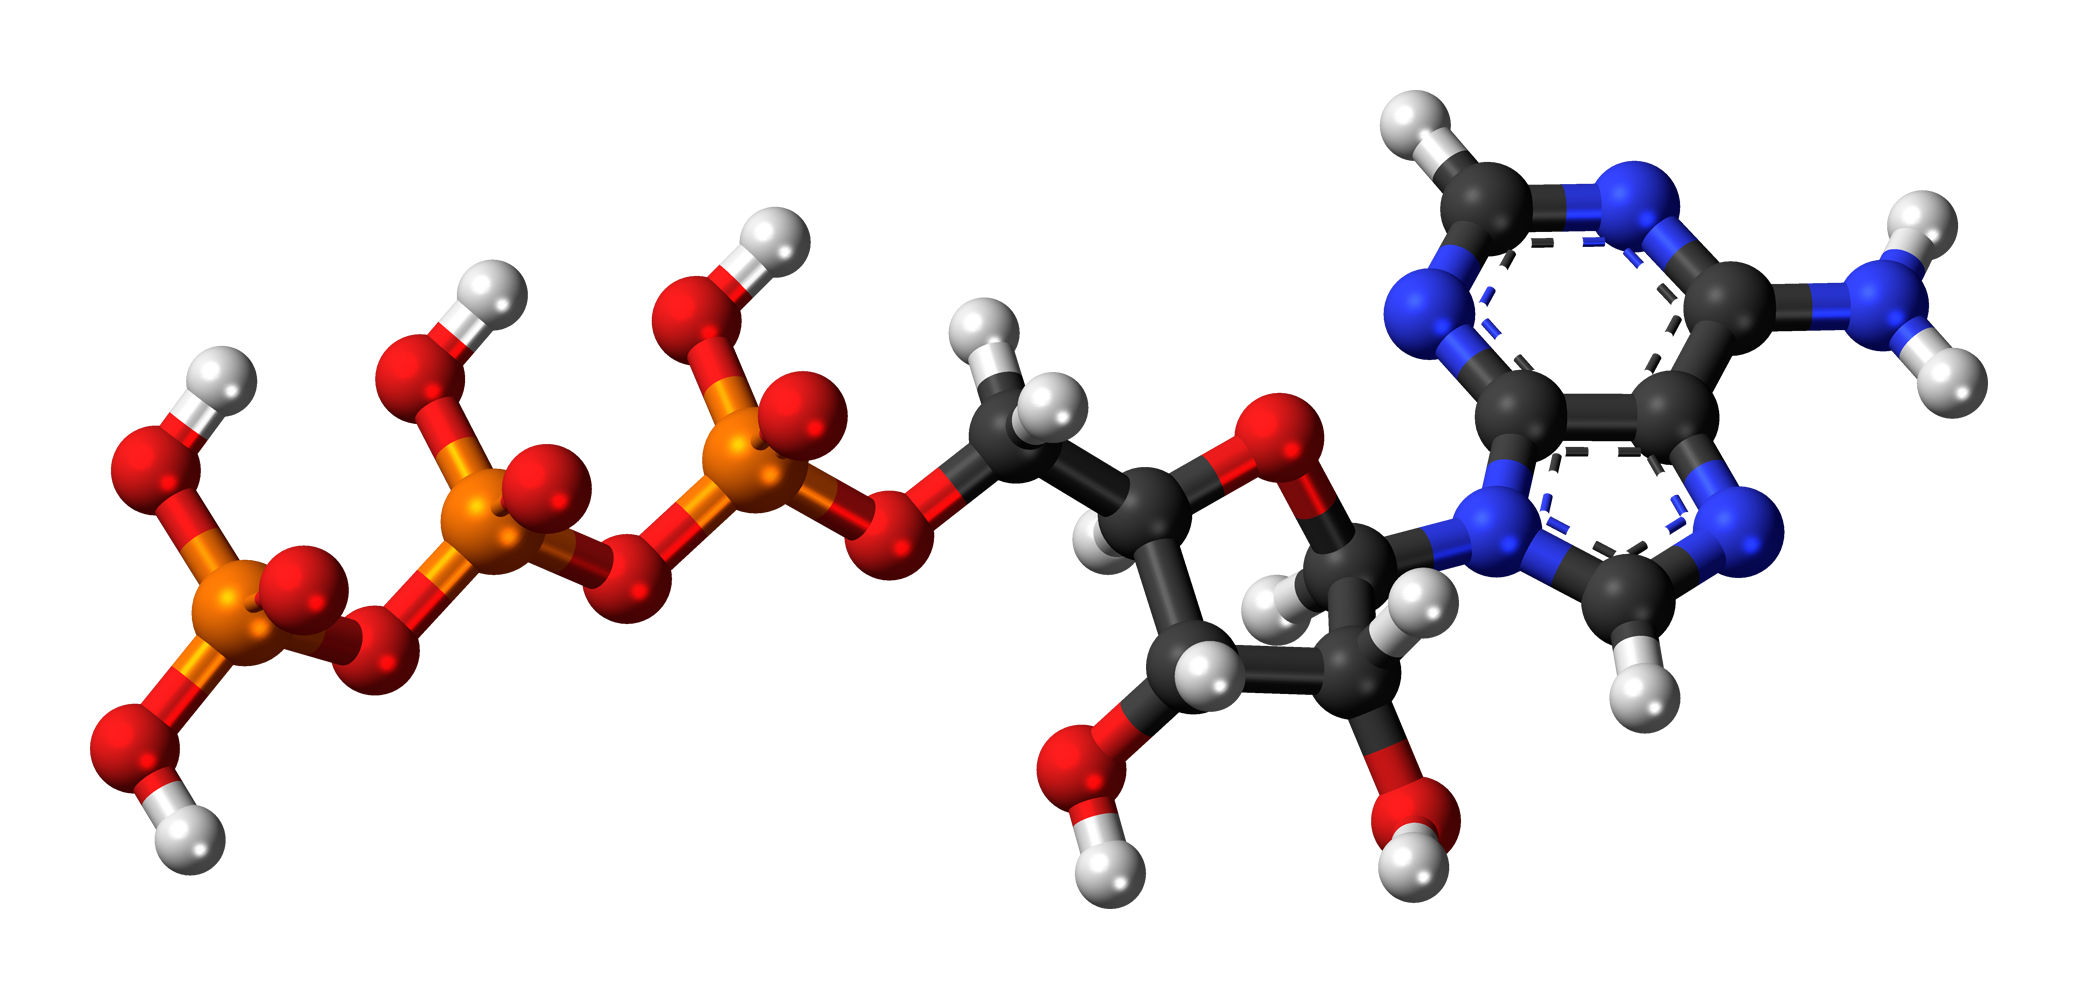 Model of adenosine triphosphate (ATP), which coenzyme Q10 and shilajit have been shown to increase.